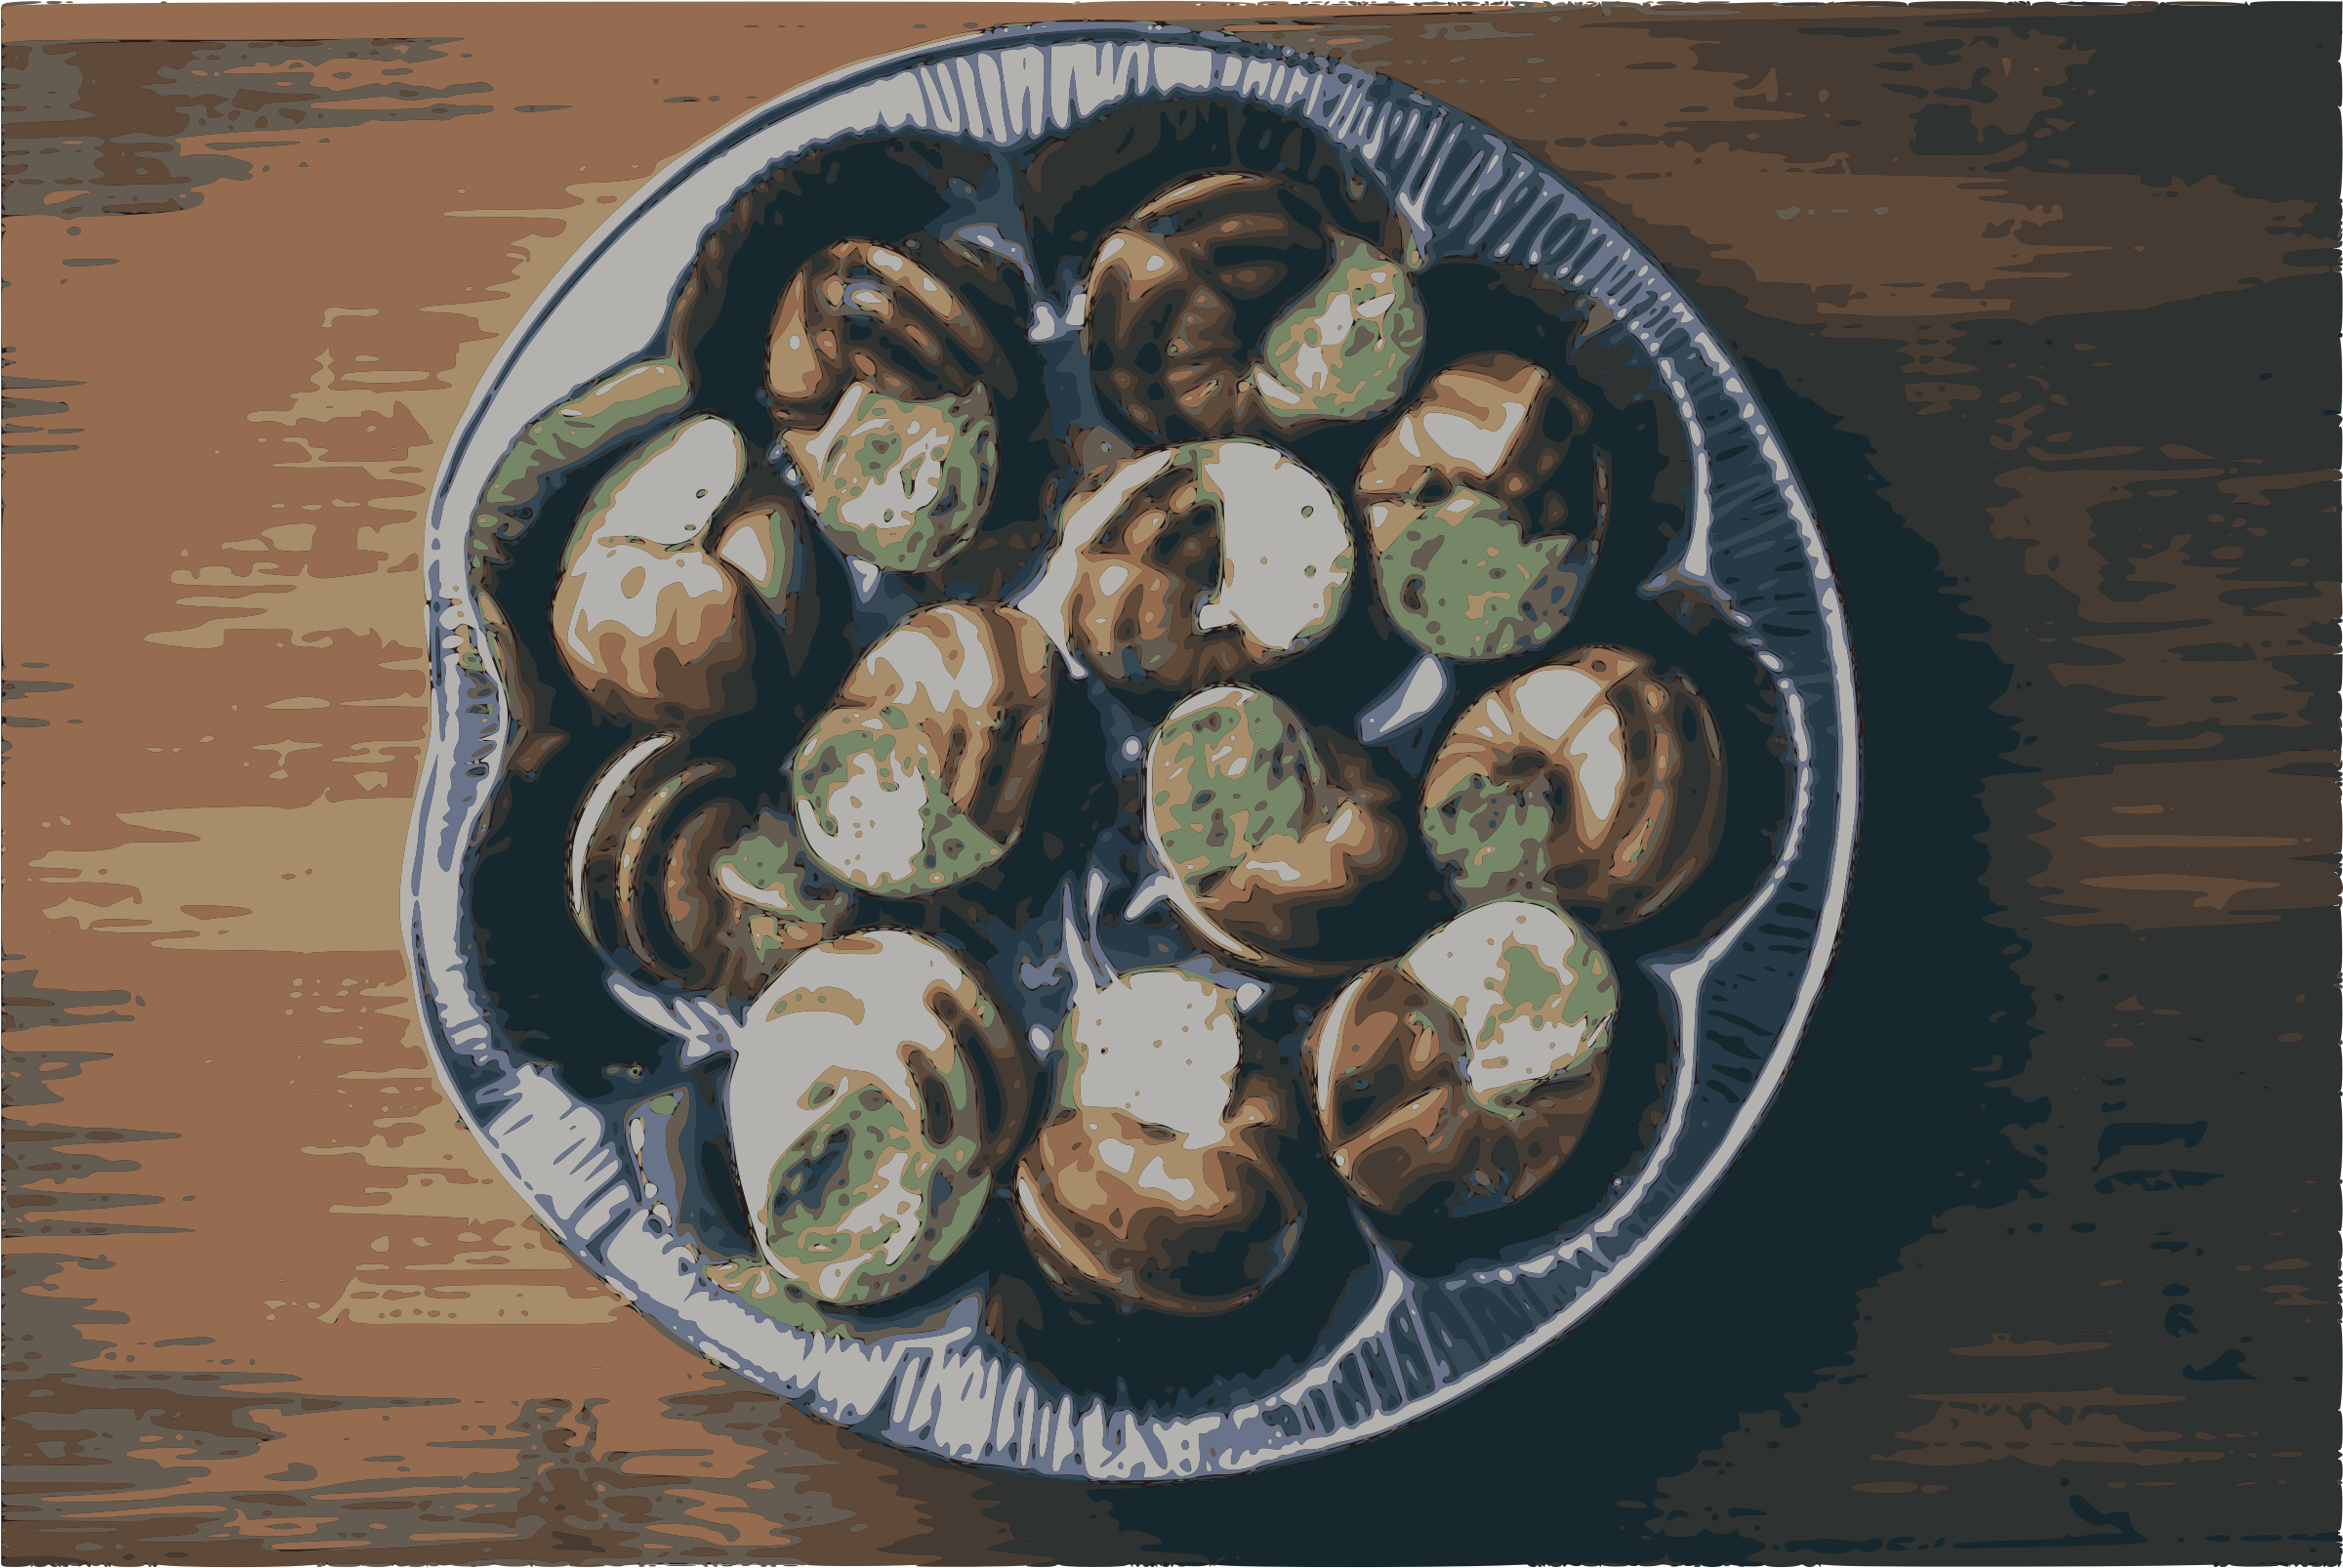 Gourmet Dish Escargot by j4p4n